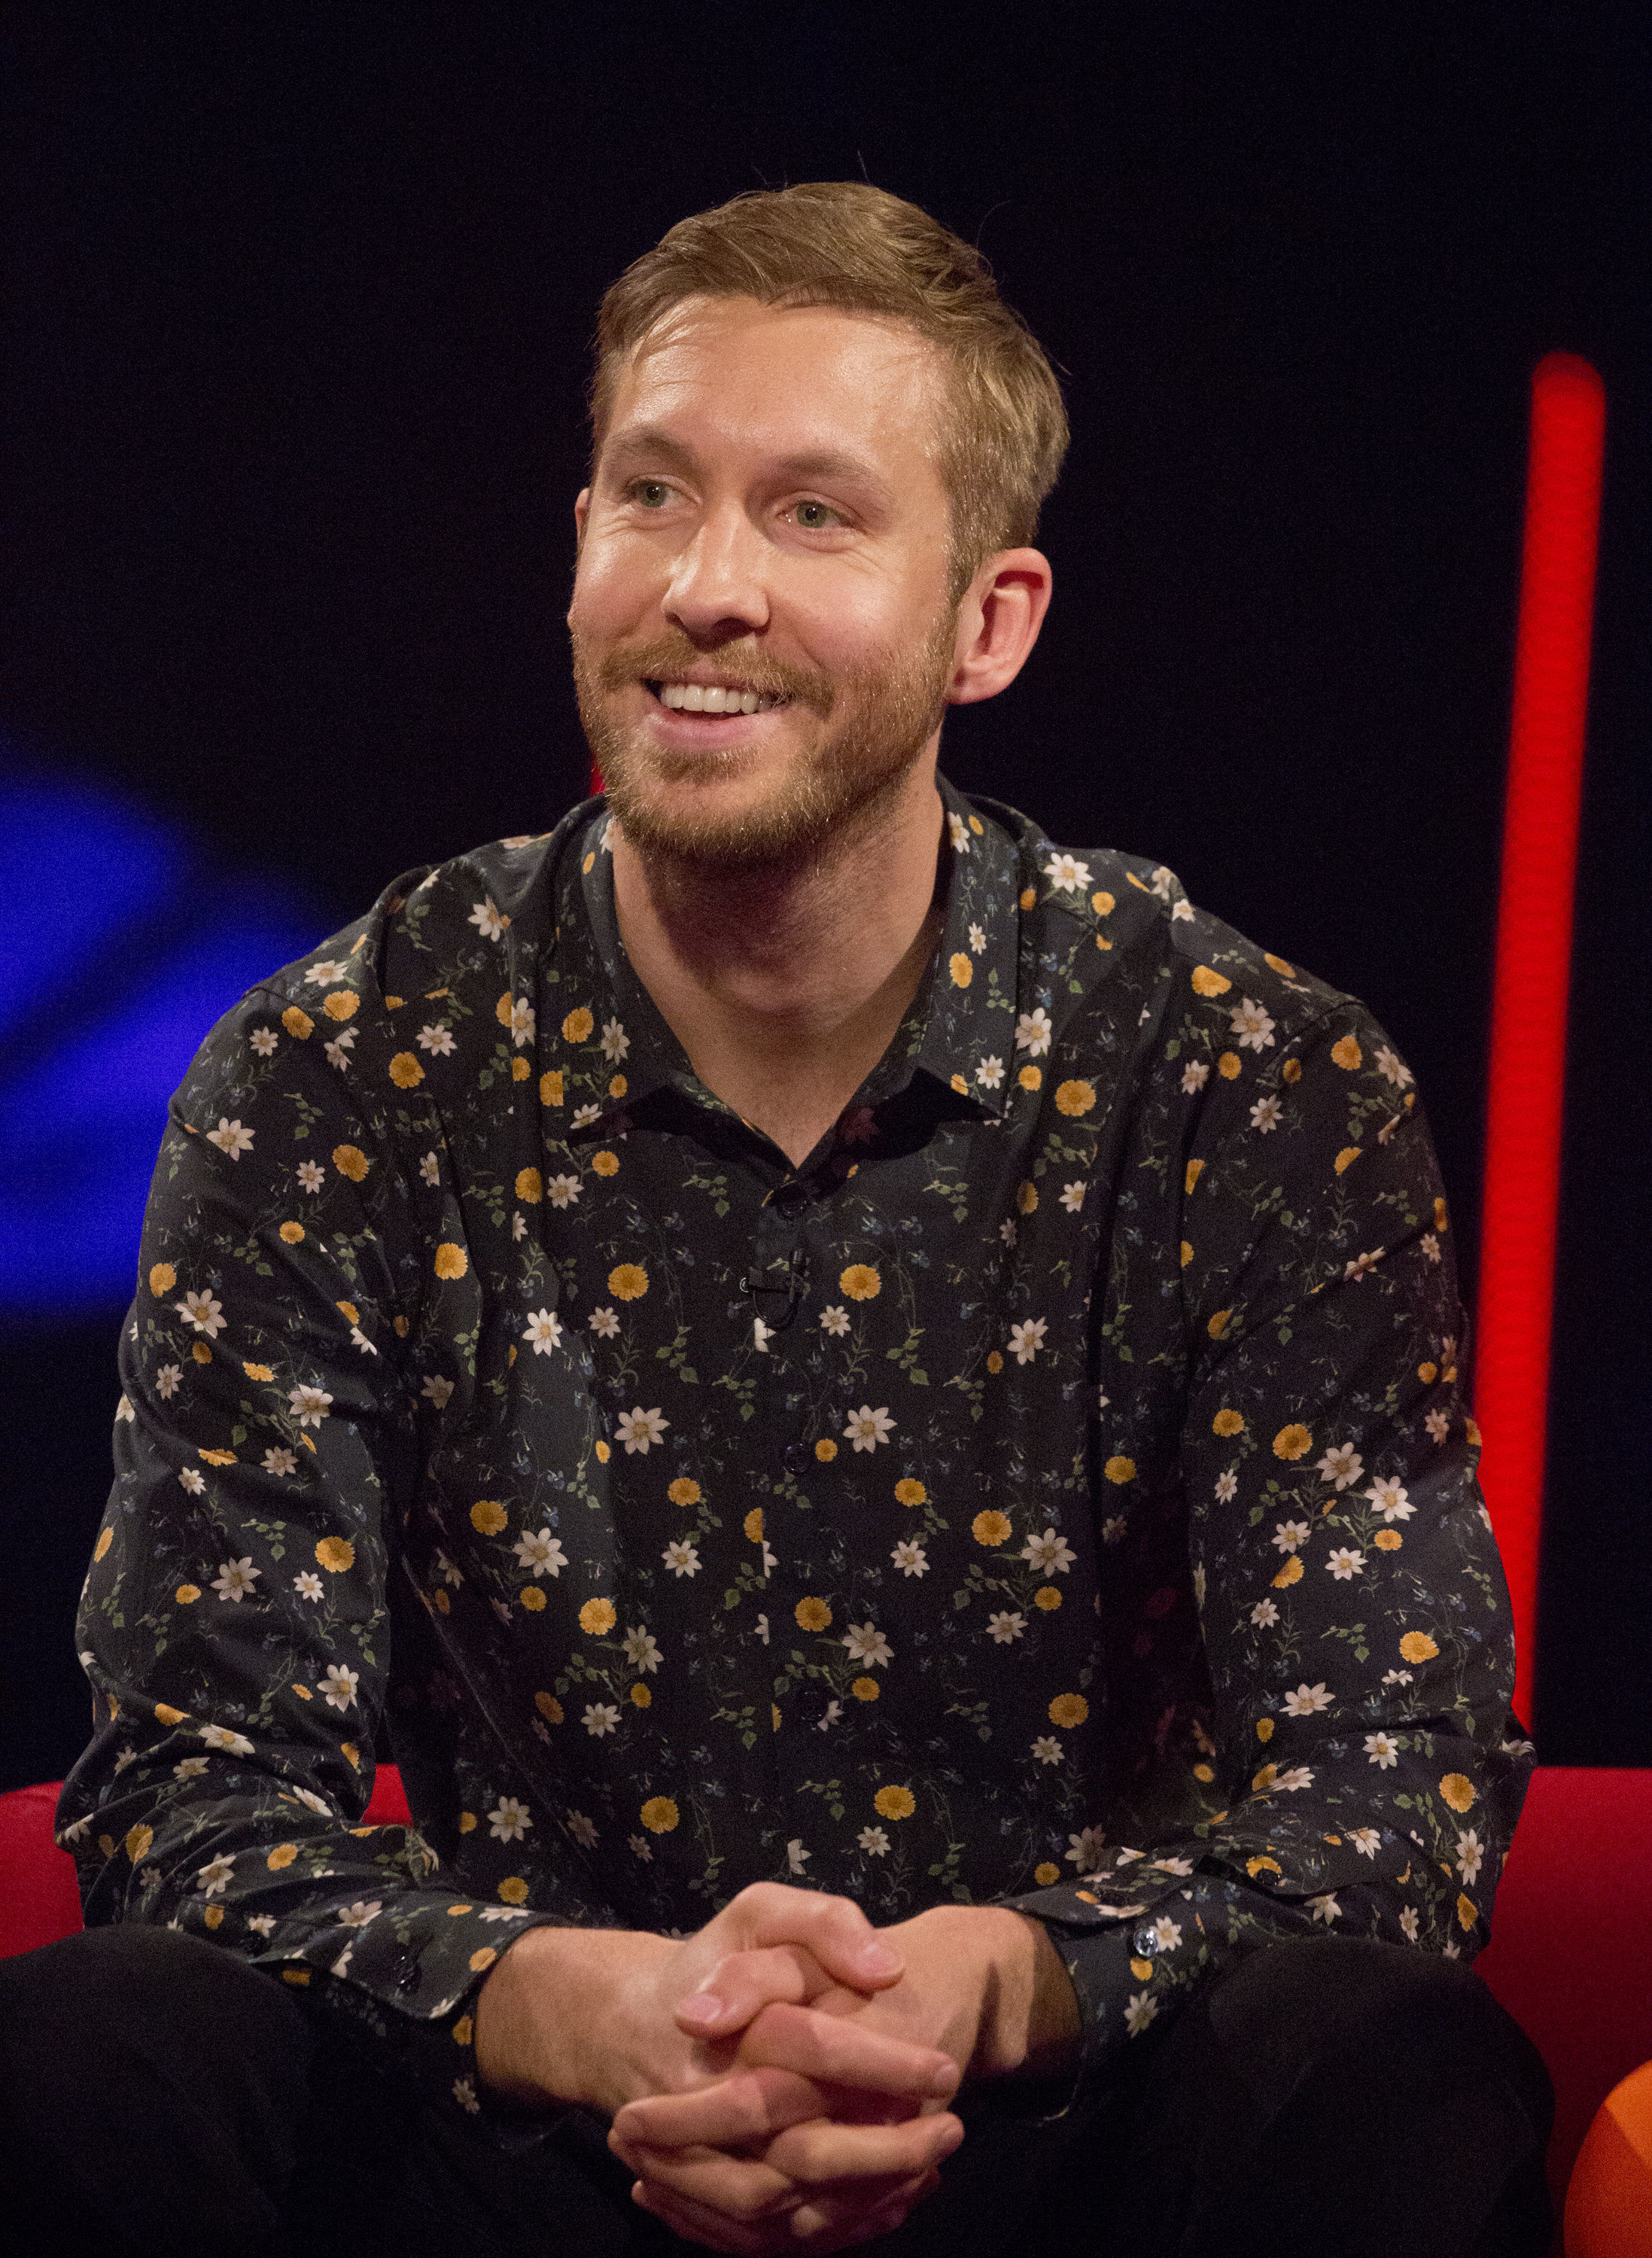 Creamfields: DJ Calvin Harris announced as one of the headlines at Creamfields in Cheshire | Chester and District Standard